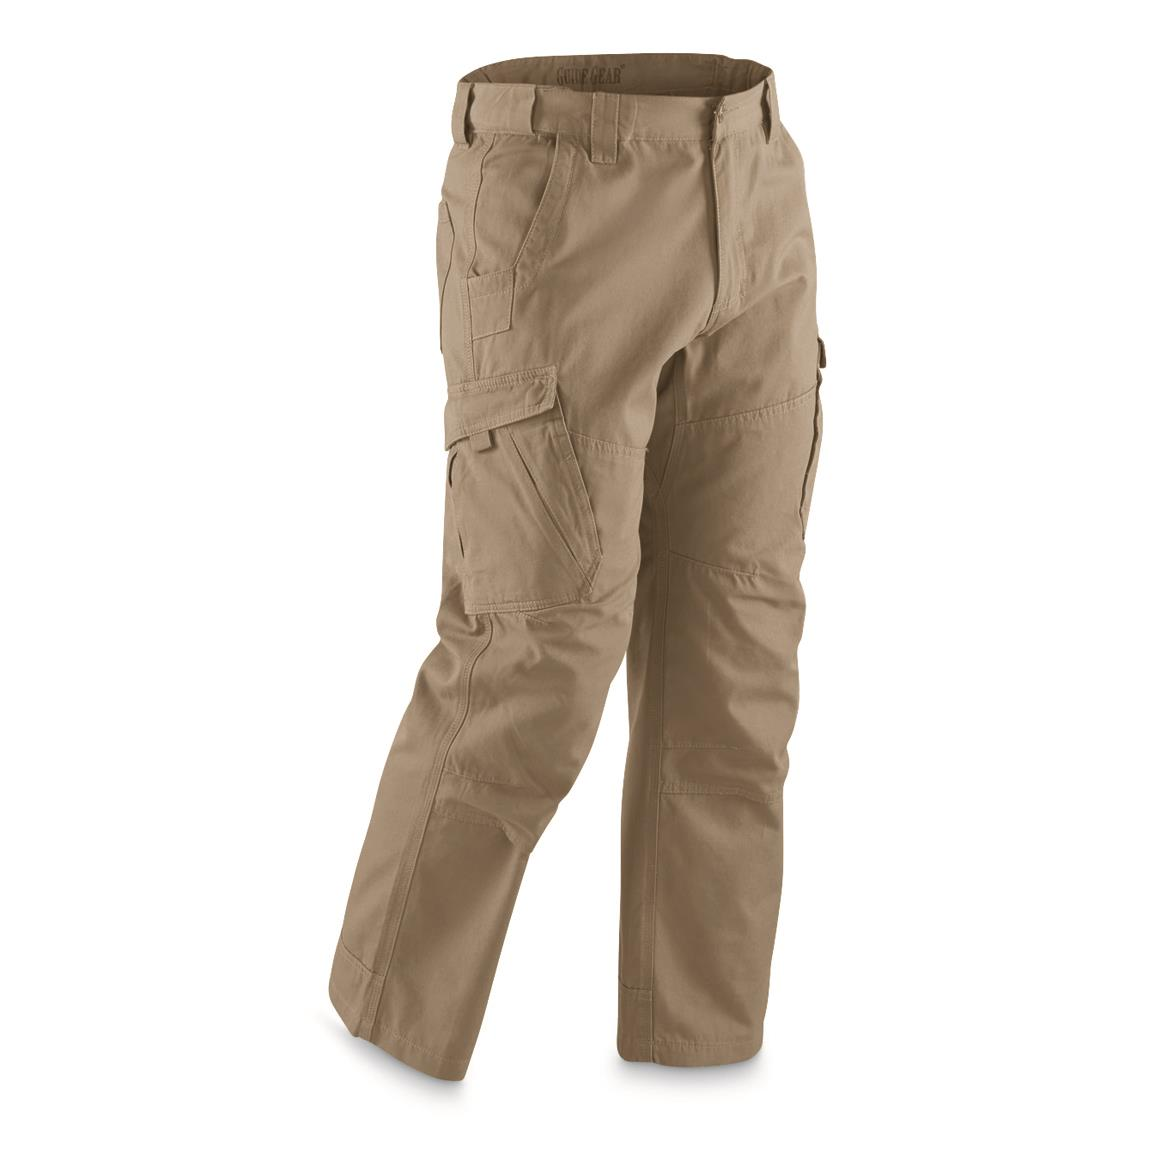 Guide Gear Men's Canvas Work Pants, Khaki